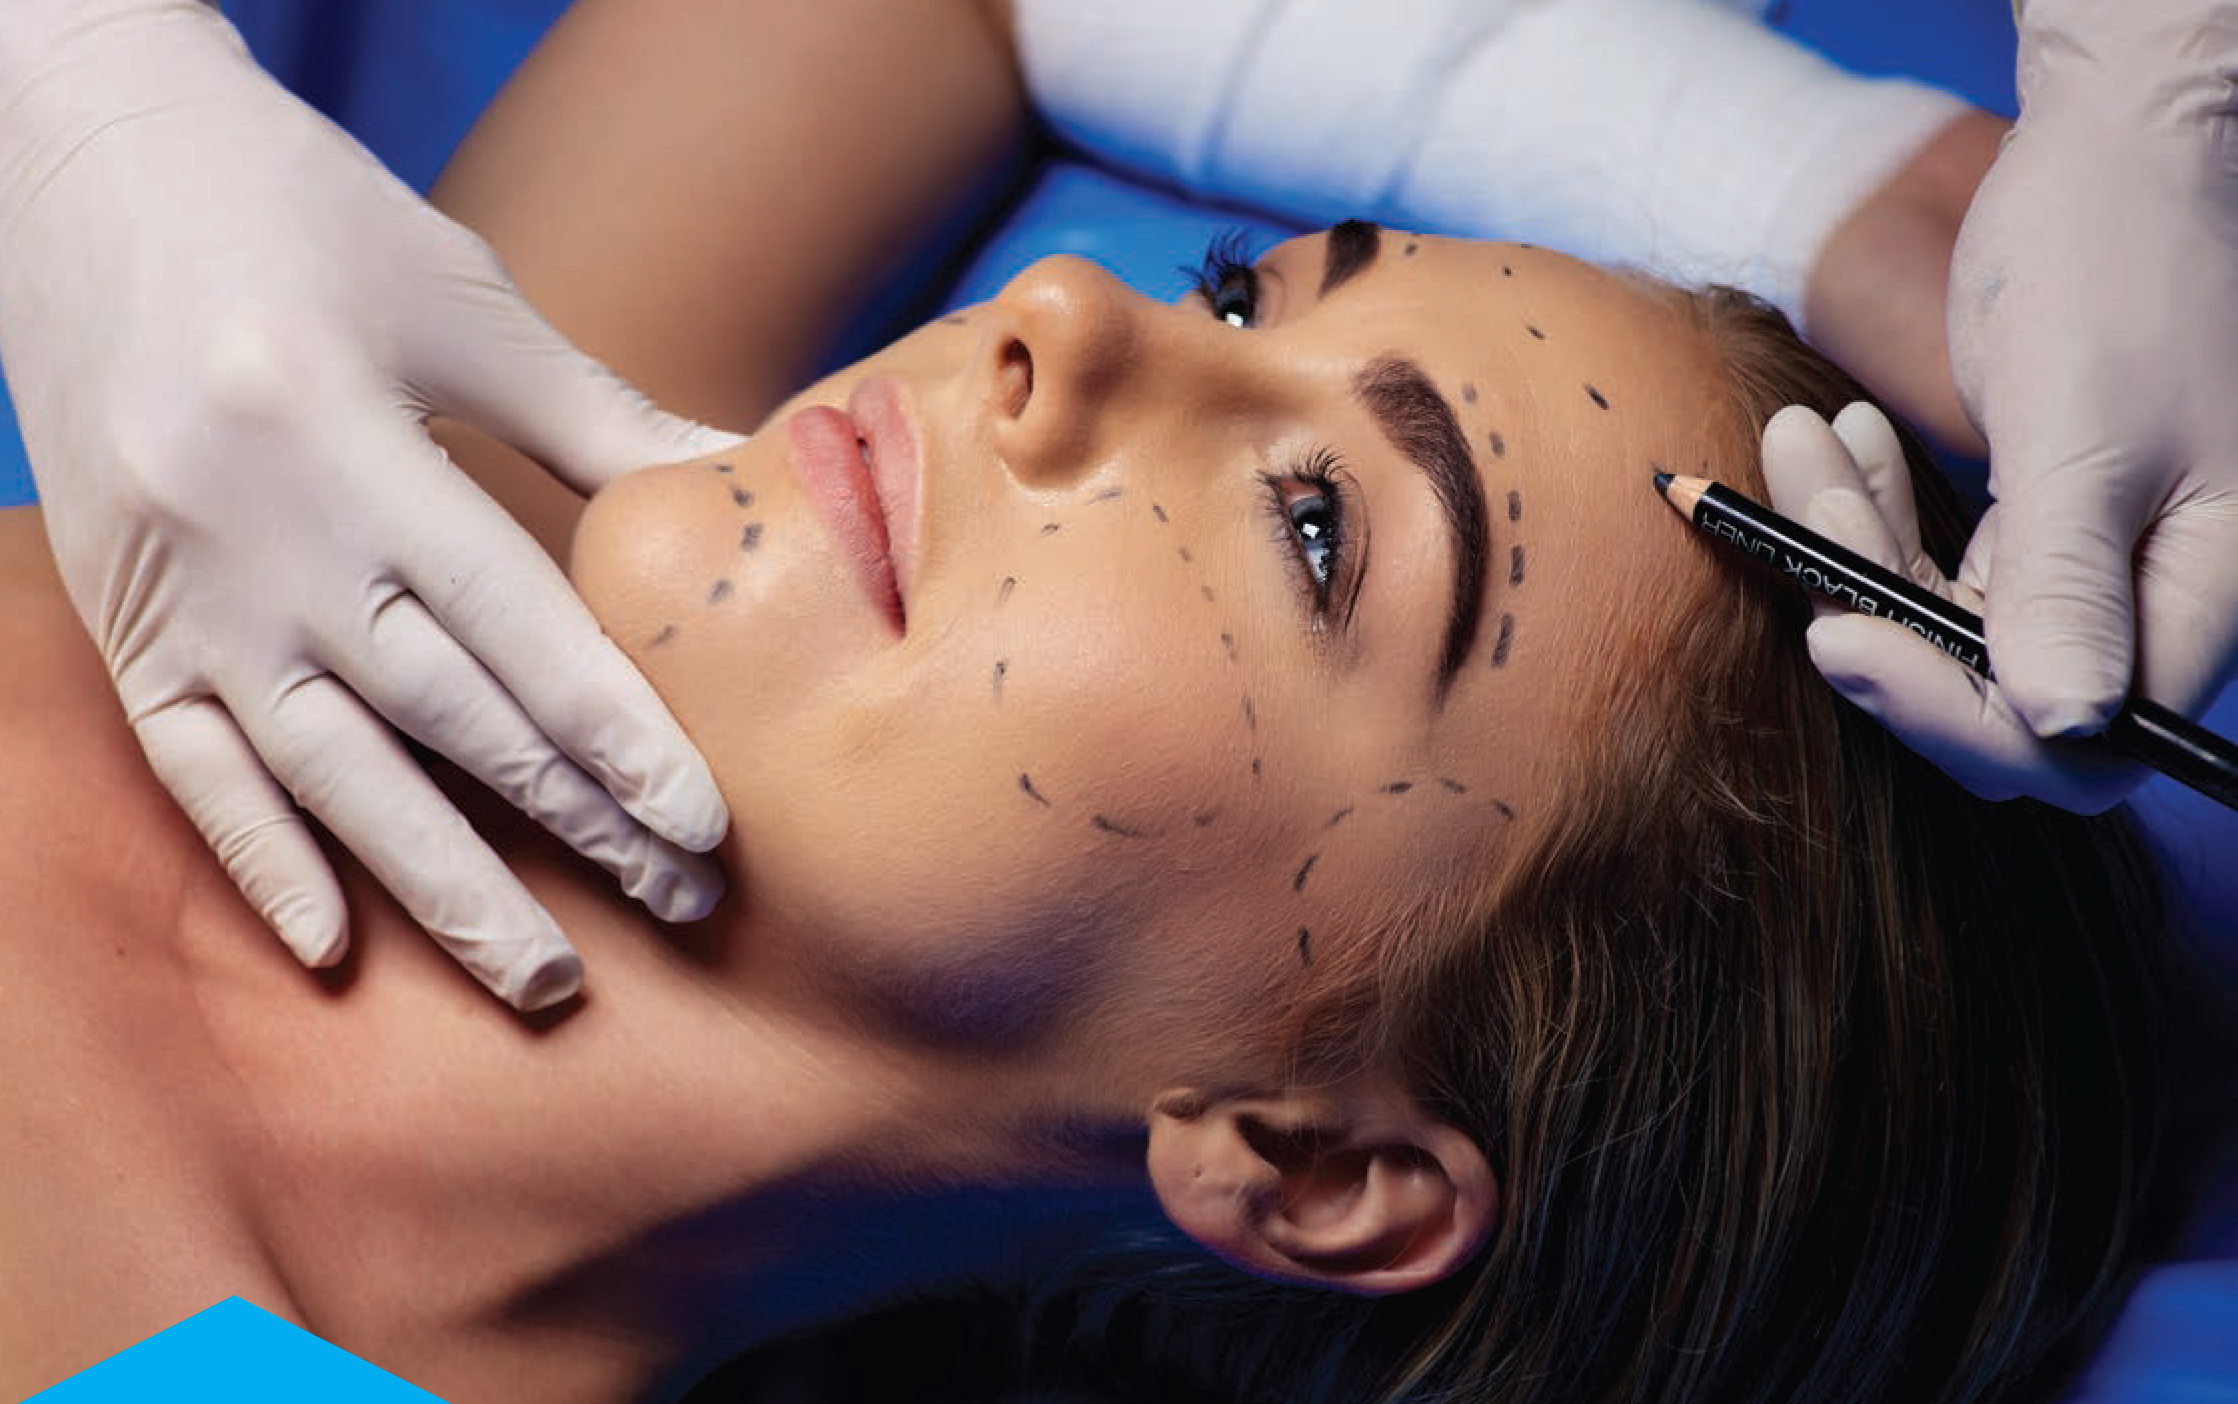 Keeping Cosmetic Surgery Safe